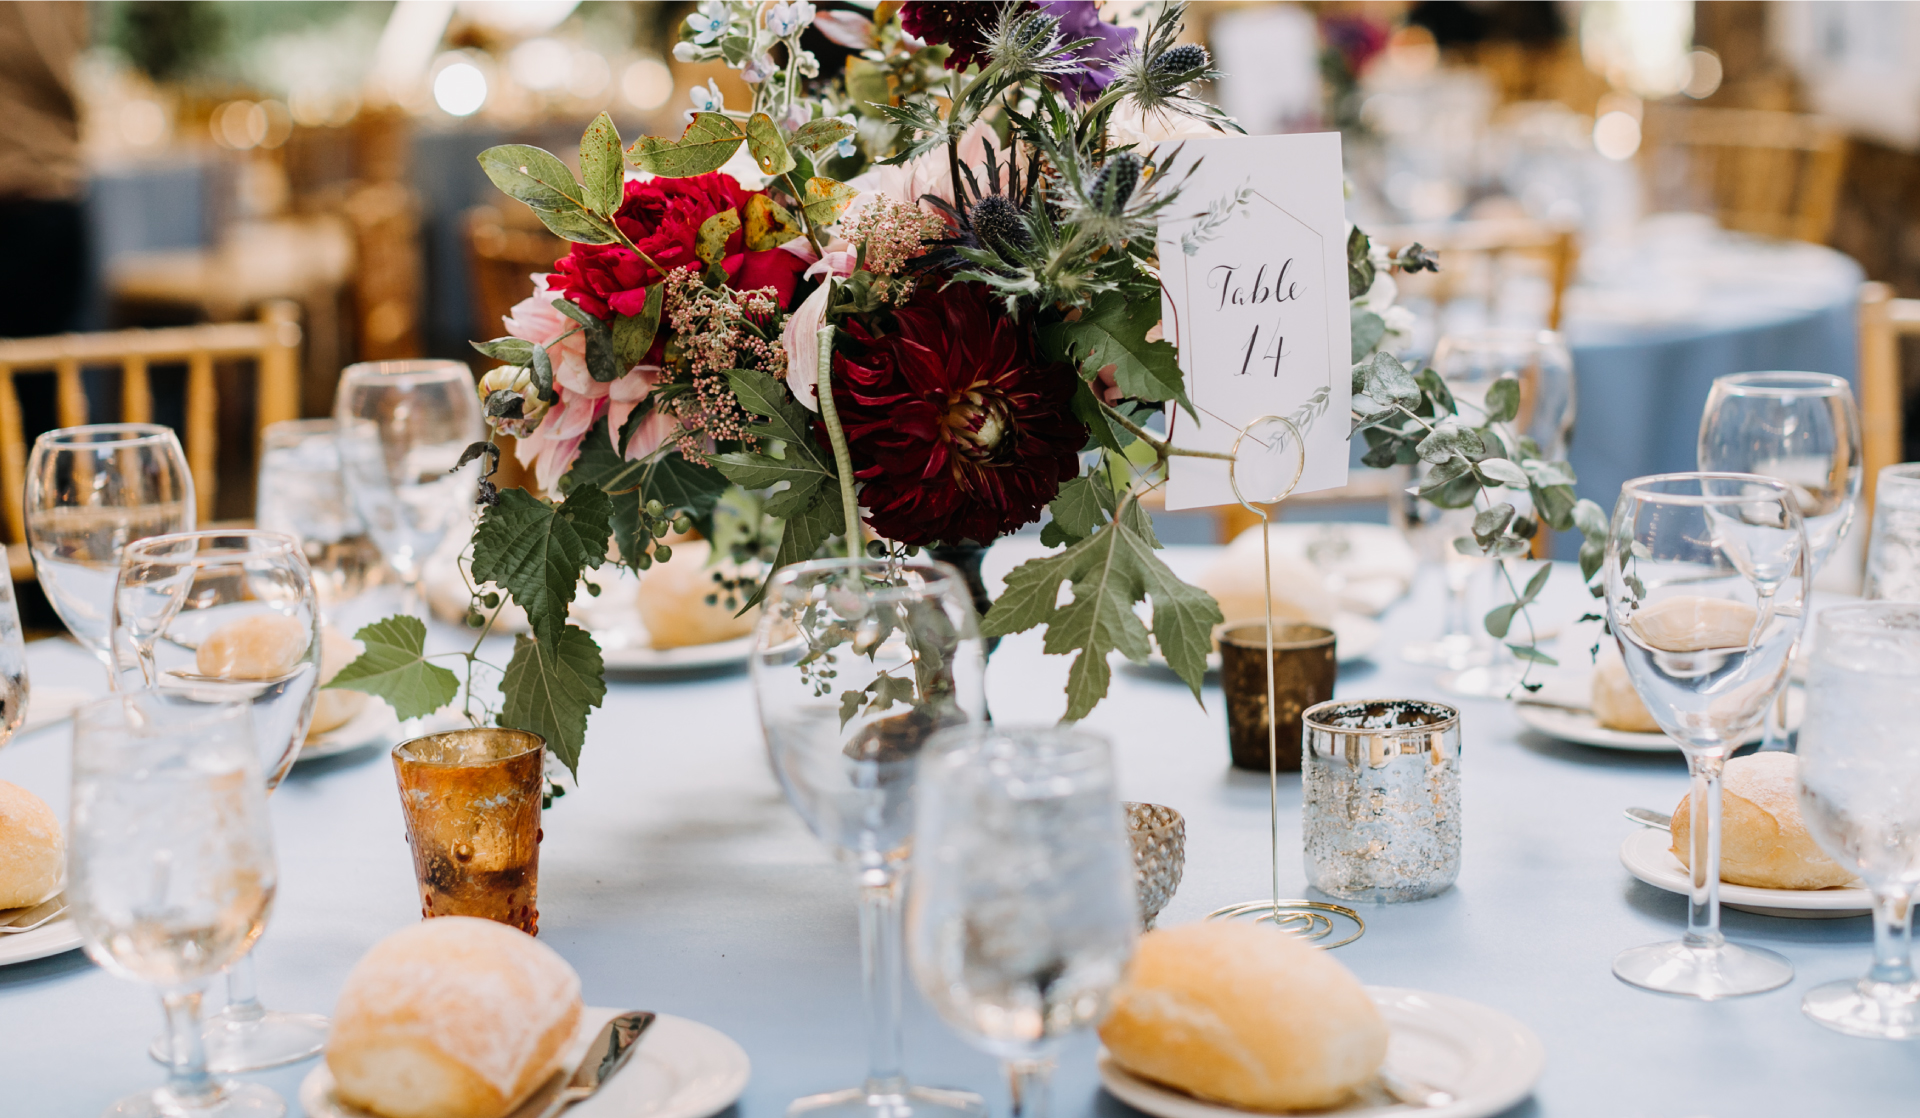 beautiful table setting for a special event